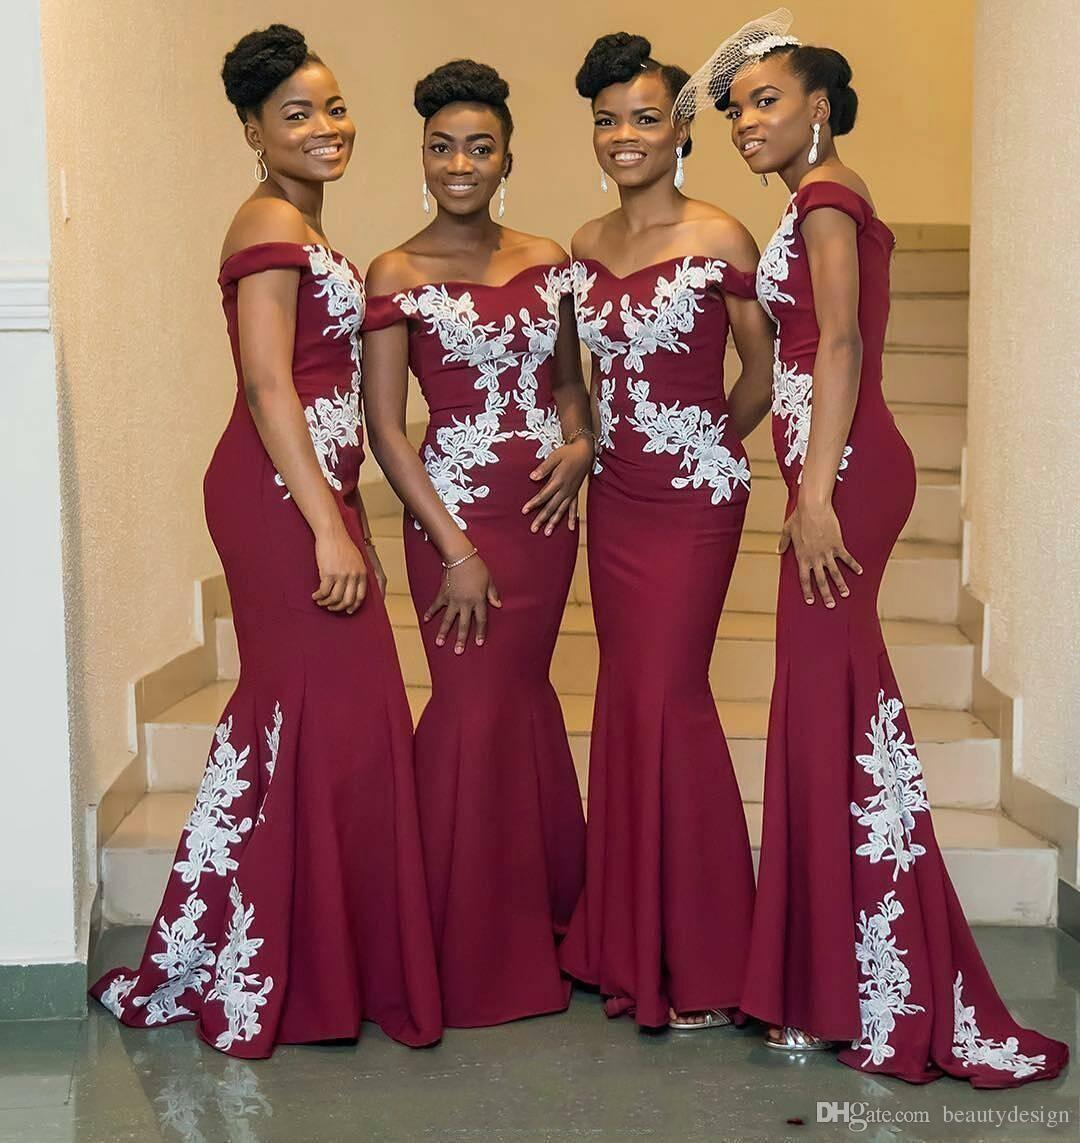 e9940323b9a9 2018 Black Girls Dark Red Mermaid Bridesmaid Dresses Nigerian Off Shoulder  White Appliques Satin Long Wedding Party Dresses Sweep Train How To Measure  For ...